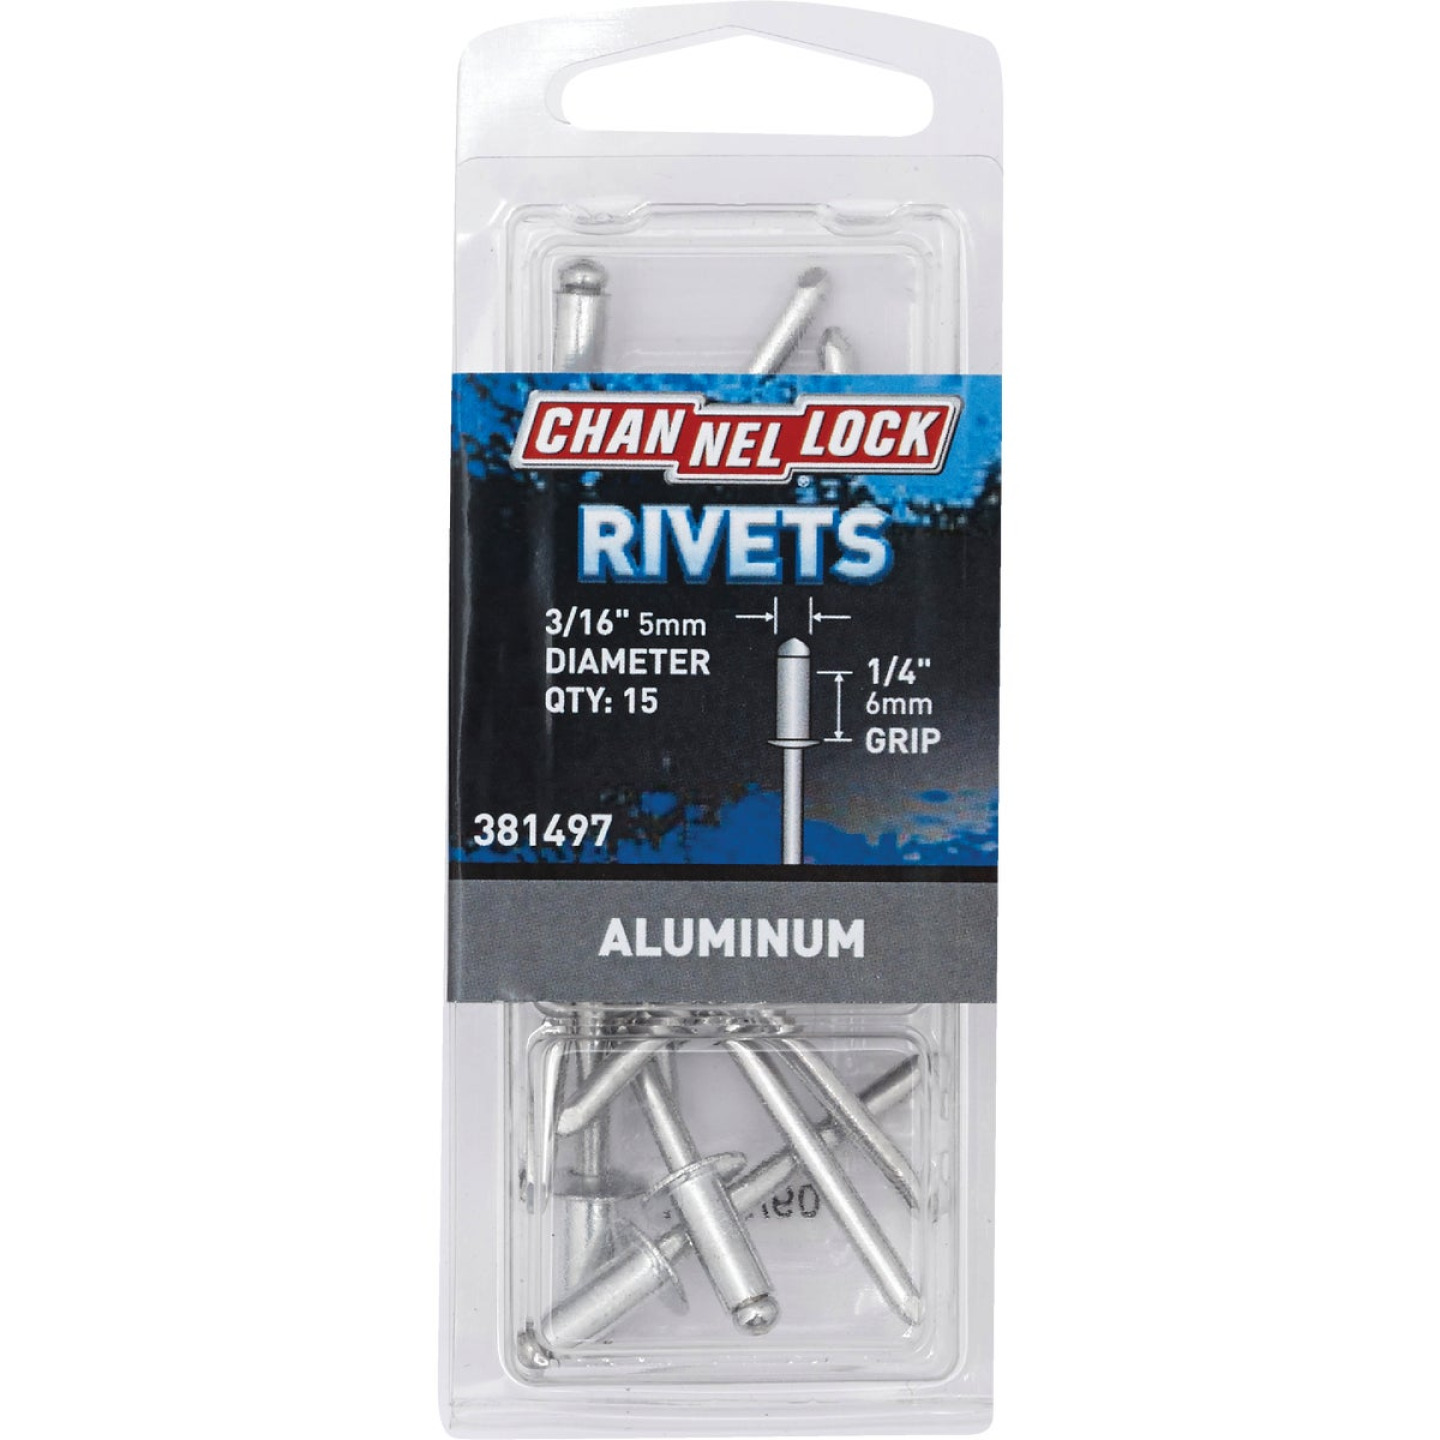 Channellock 3/16 In. Dia. x 1/4 In. Grip Aluminum POP Rivet (15-Pack) Image 1